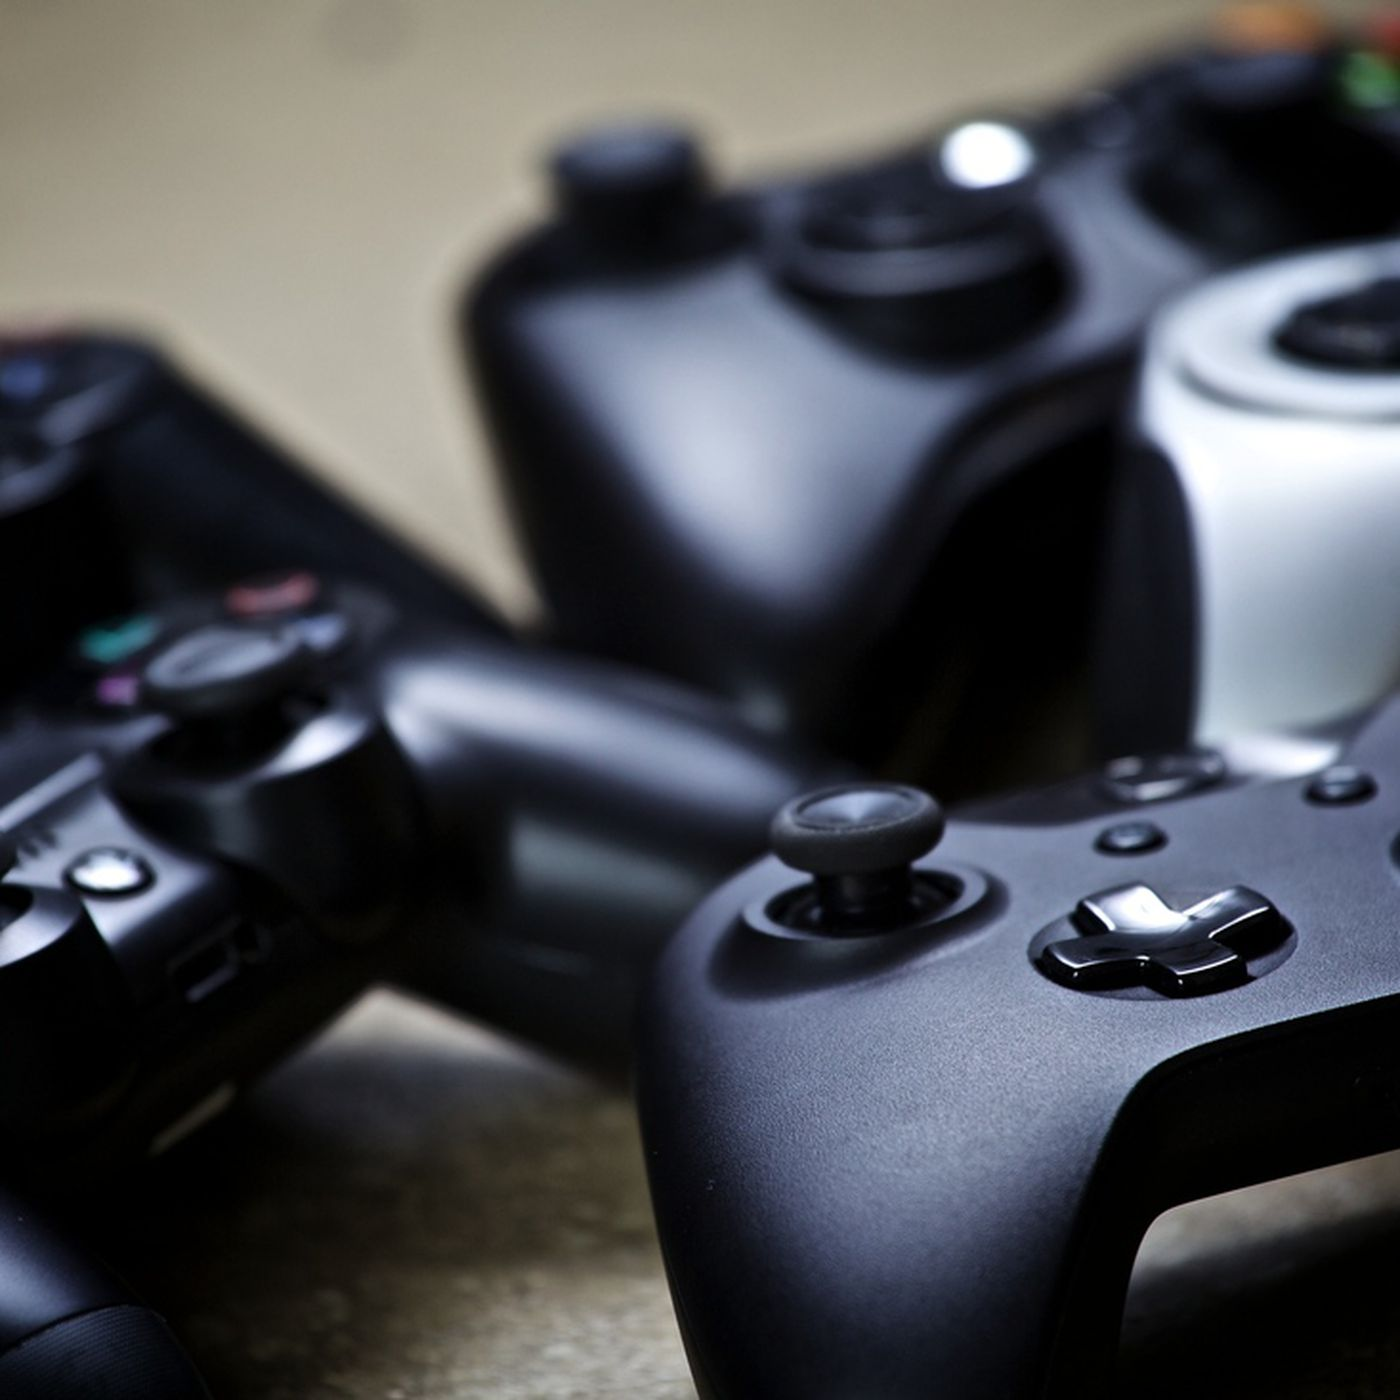 The Xbox One can now find your lost controller - The Verge